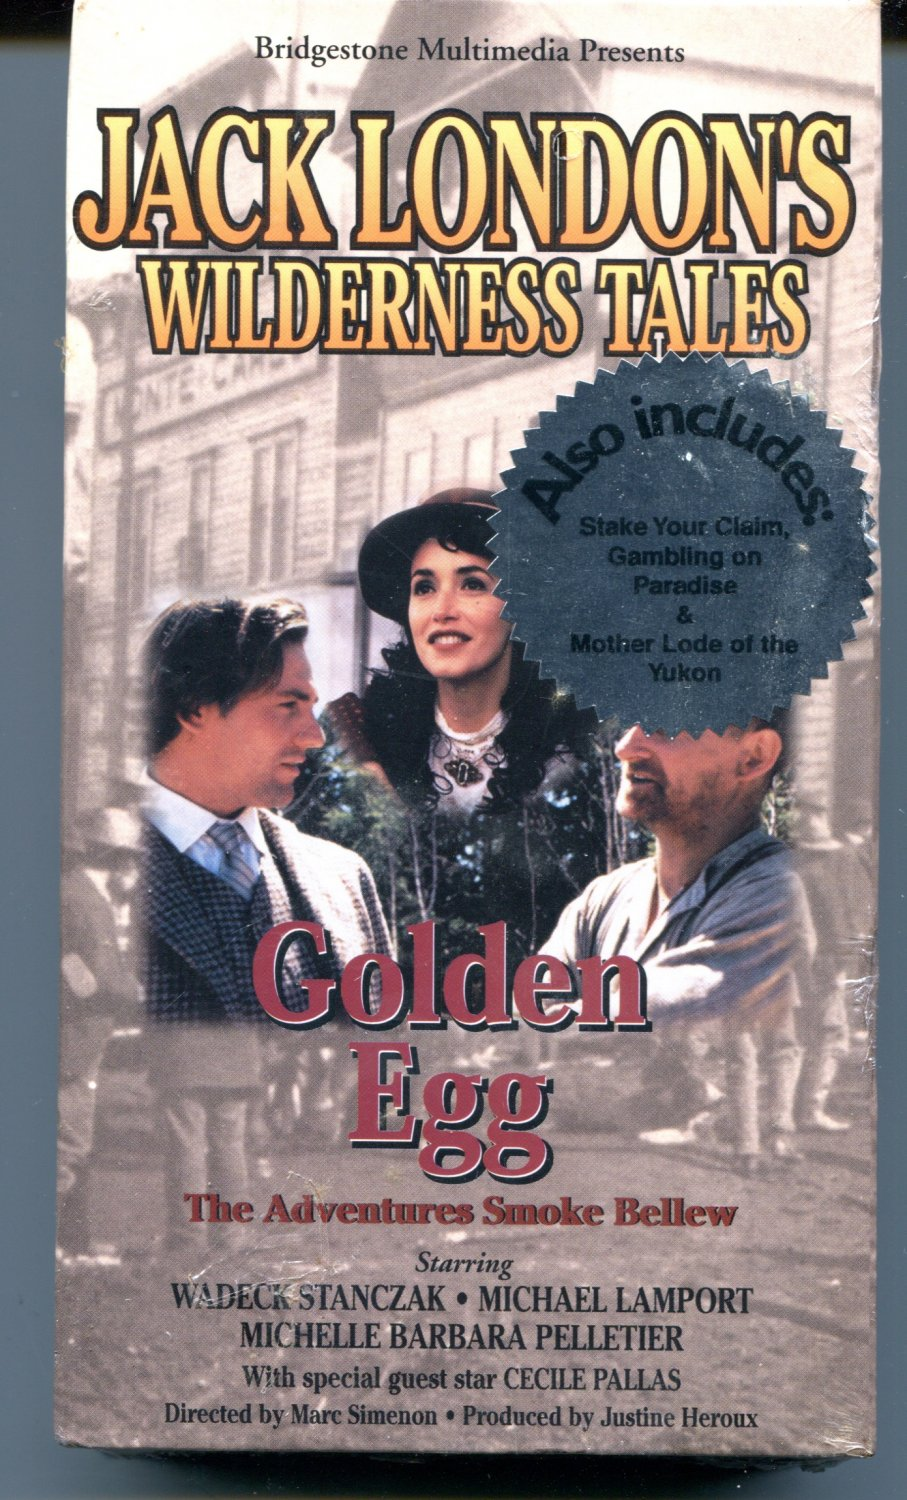 Jack London's Wilderness Tales: The Golden Egg, Adventures of Smoke Bellew (VHS 1991)